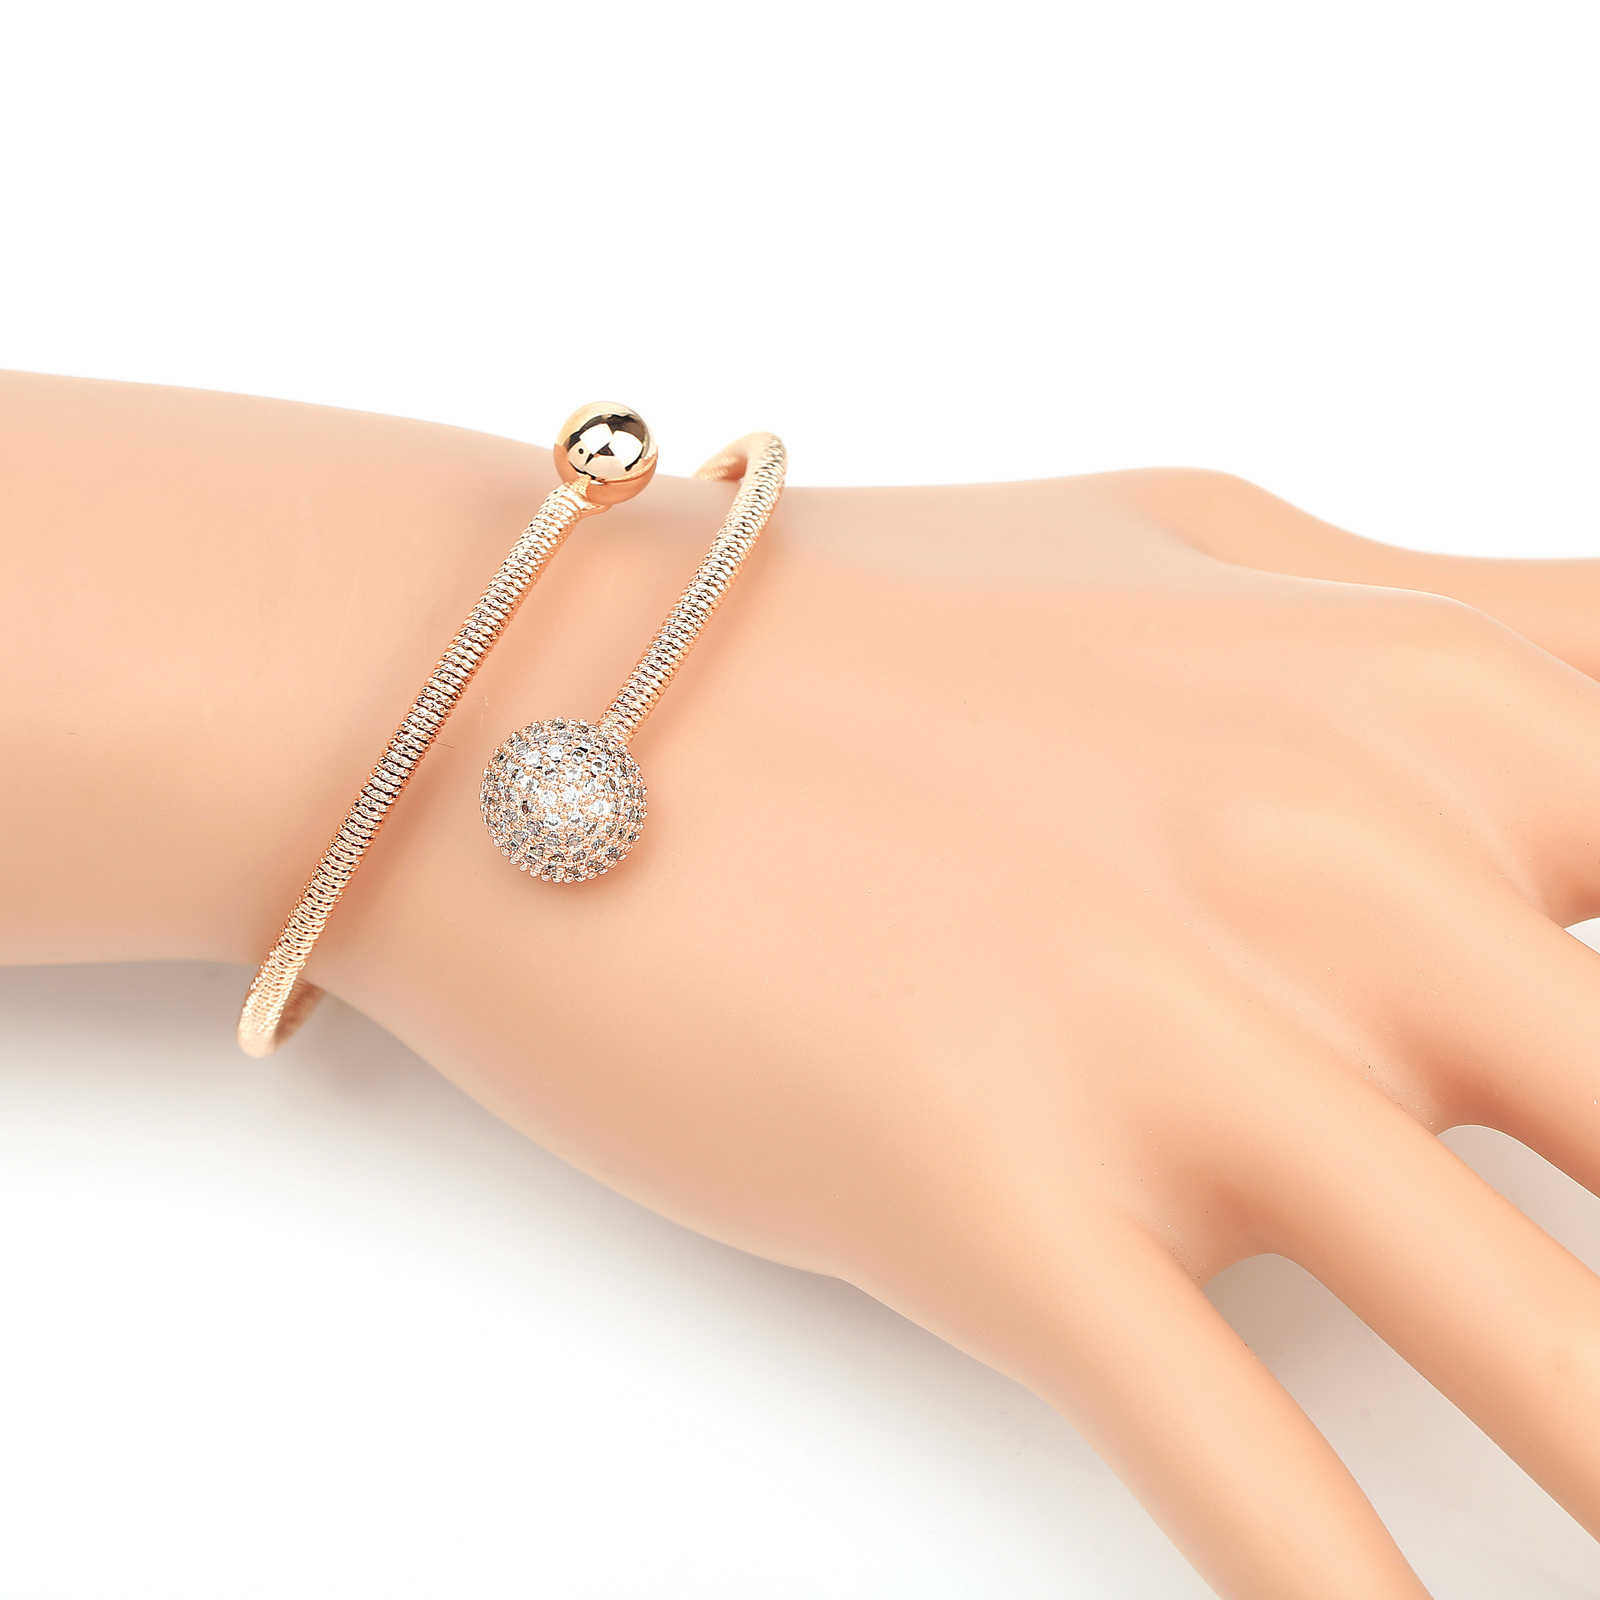 Primary image for UE-Stylish Designer Rose Tone Wrap Bangle Bracelet With Swarovski Style Crystals